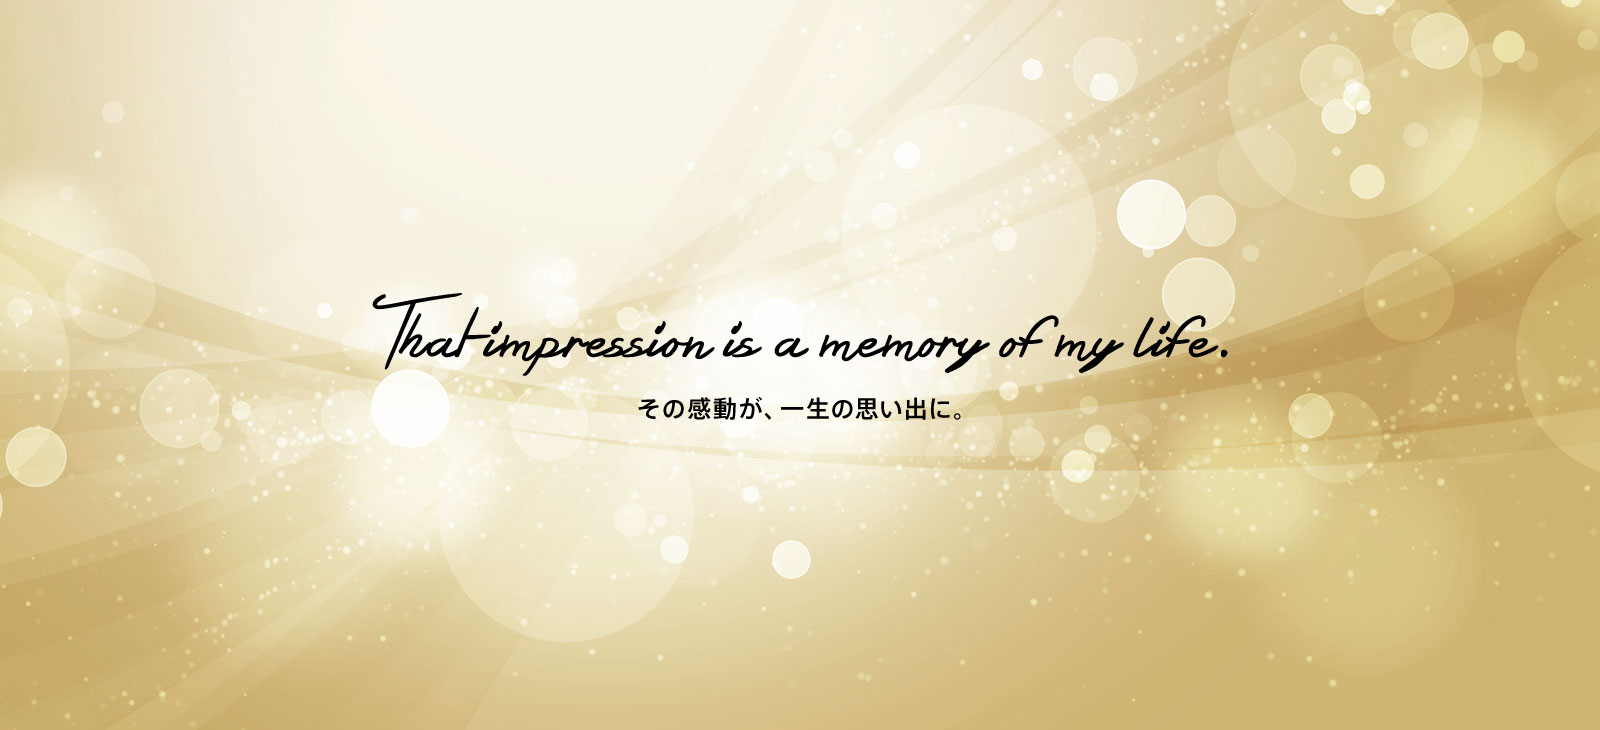 その感動が、一生の思い出に。That impresion is a memory of my life.